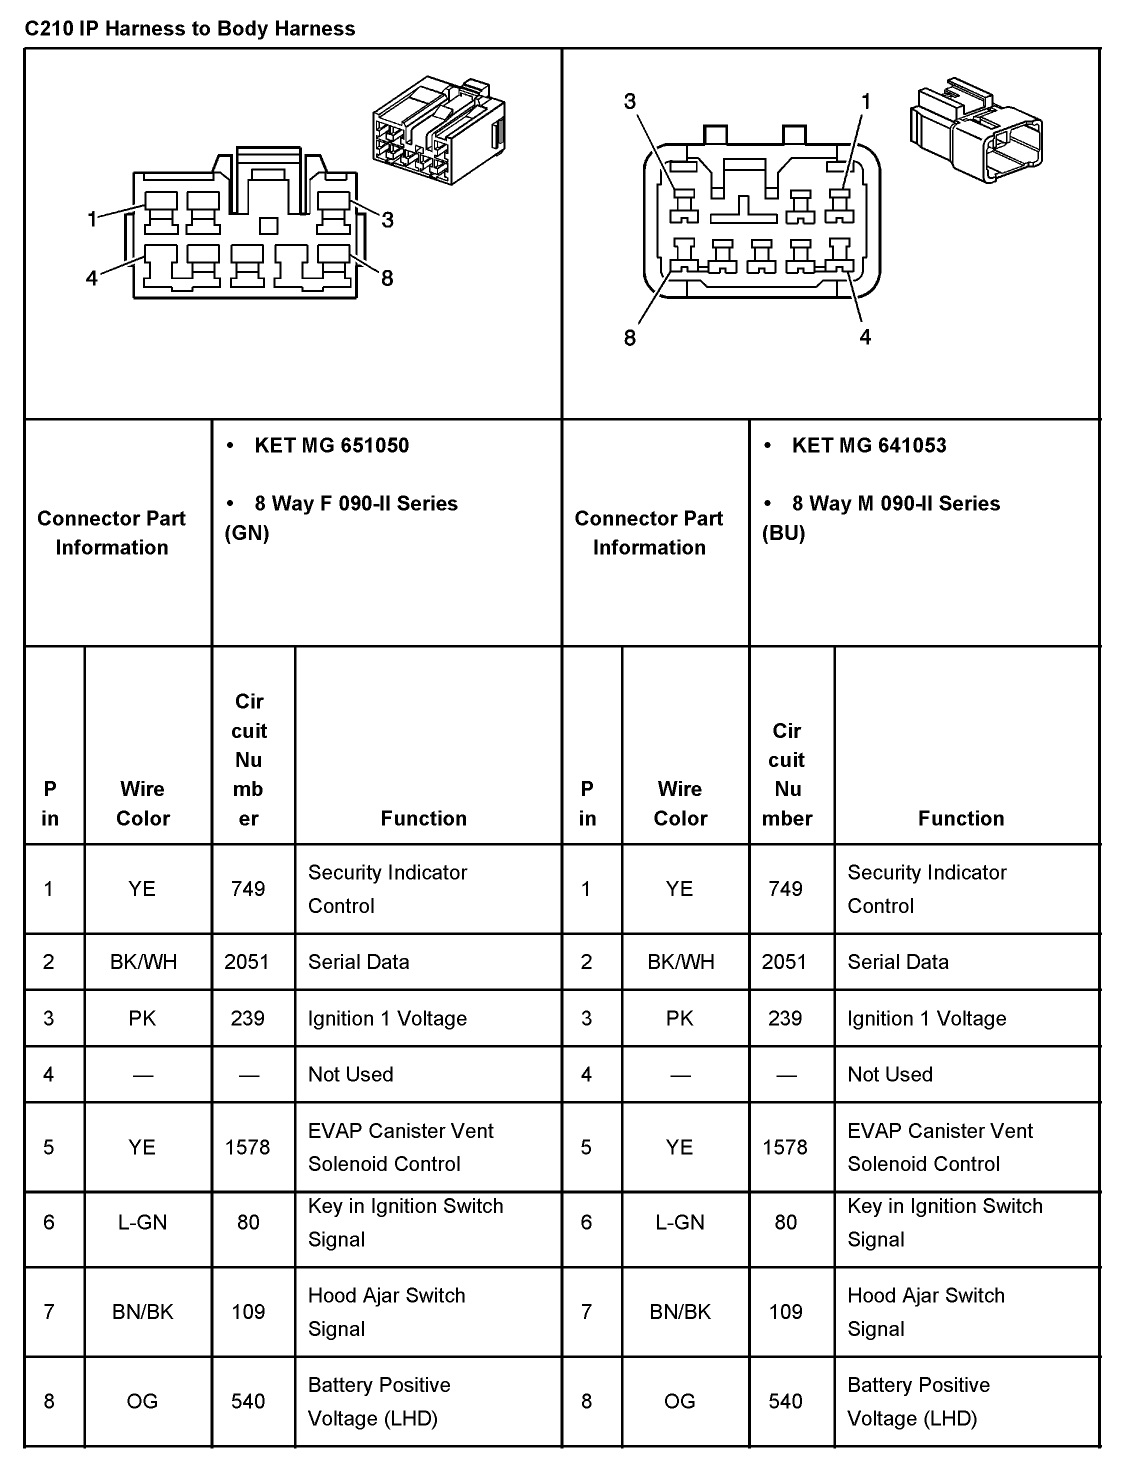 cobalt fuse diagram d7e5 2007 cobalt fuse box diagram wiring resources 2006 cobalt fuse diagram d7e5 2007 cobalt fuse box diagram